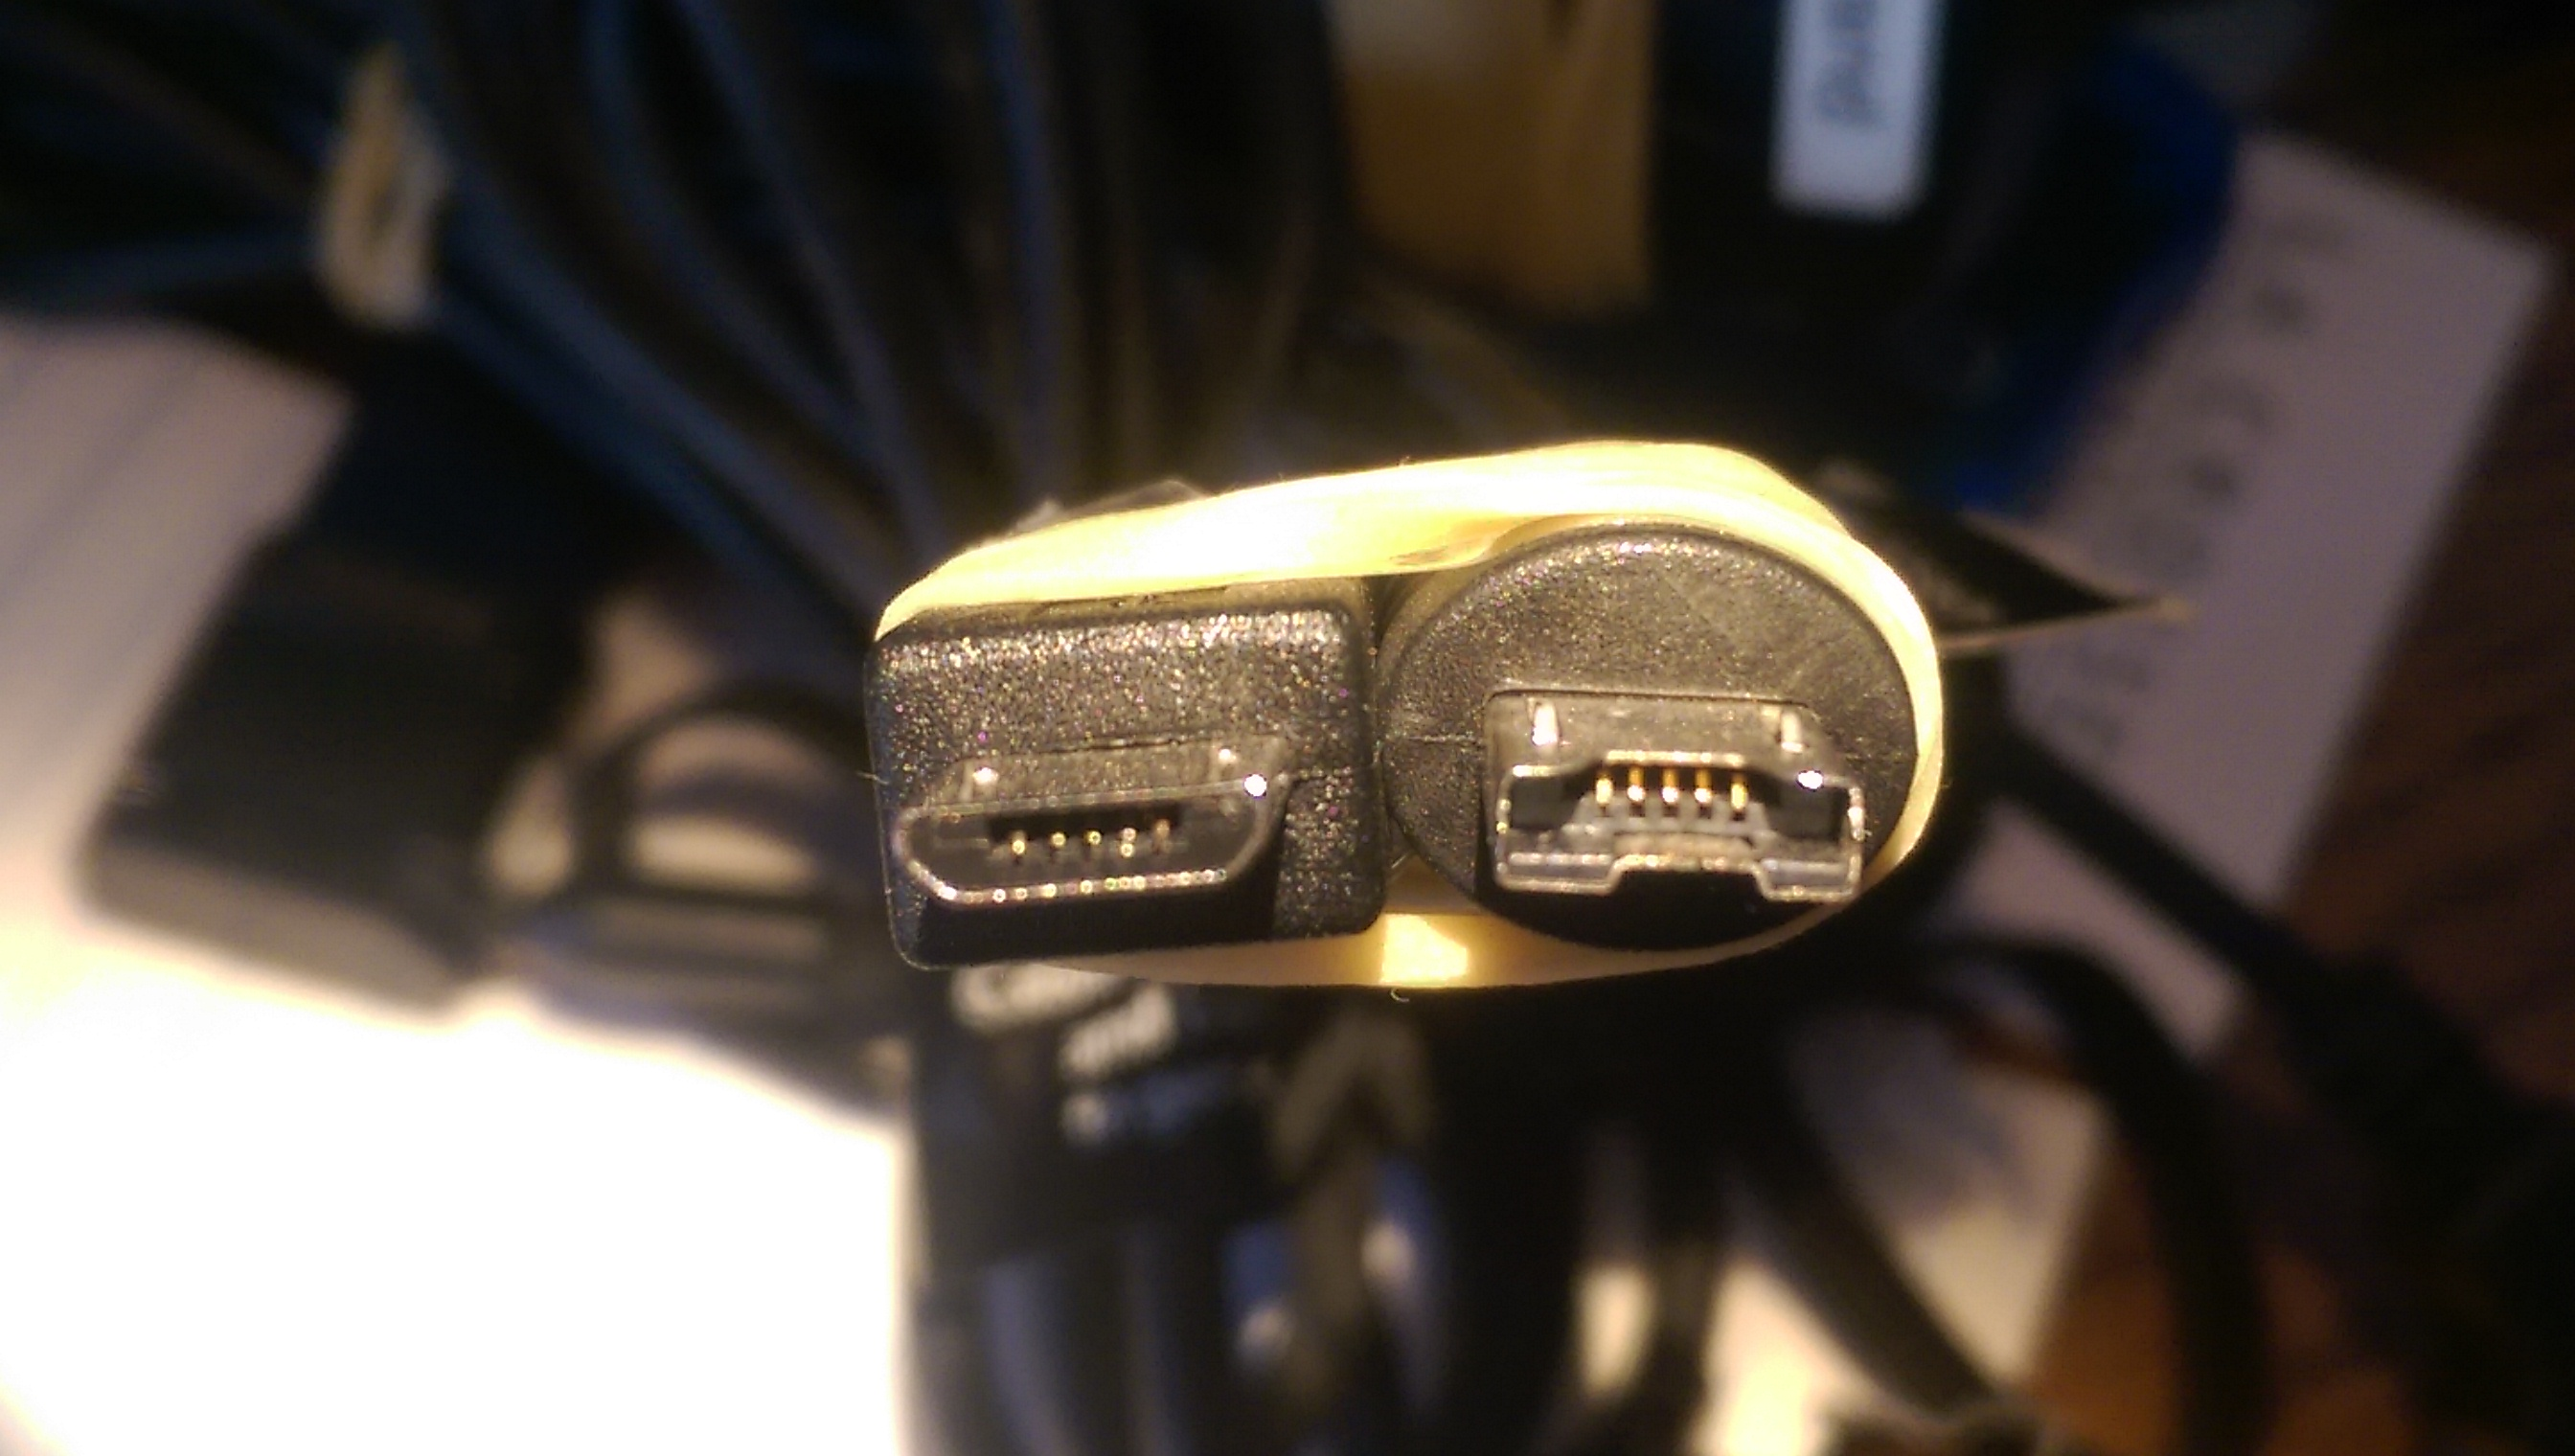 two plugs for identification